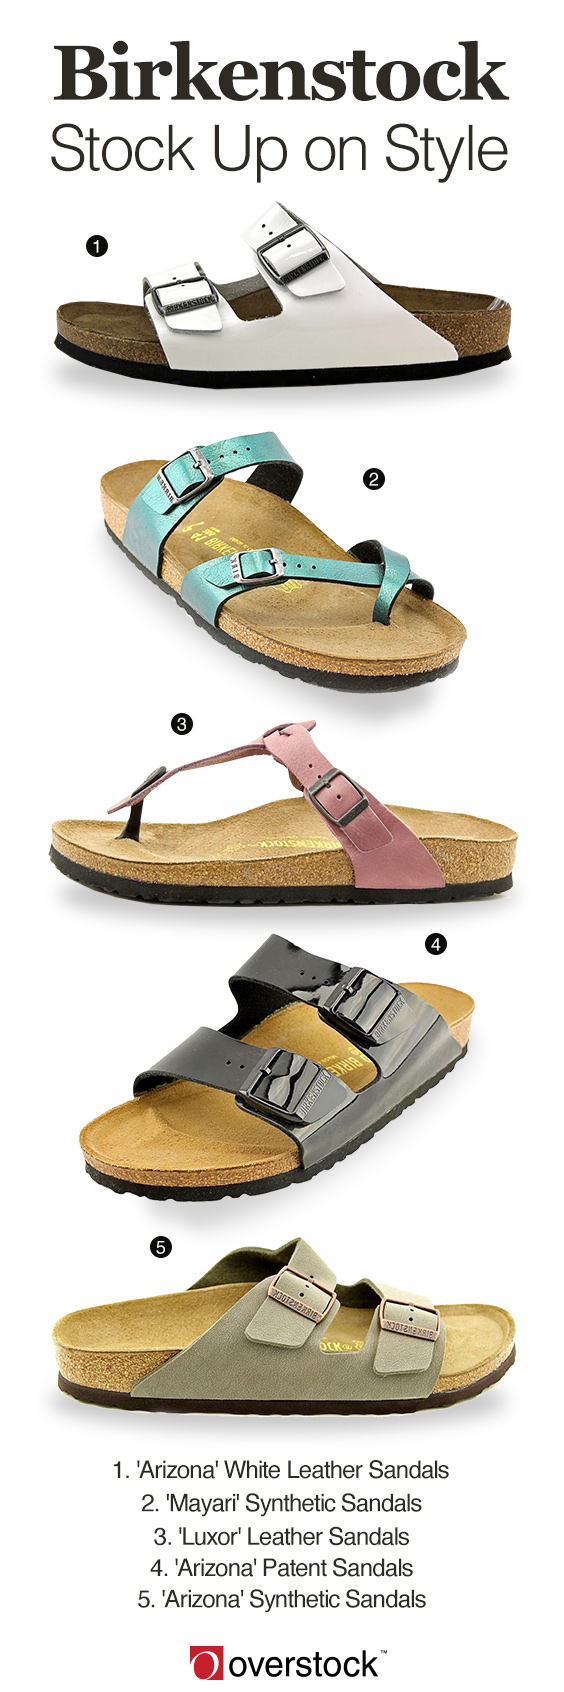 d93de6ab385 Enjoy the sheer comfort of these relaxing sandals from Birkenstock. With  deeply cushioned footbeds that